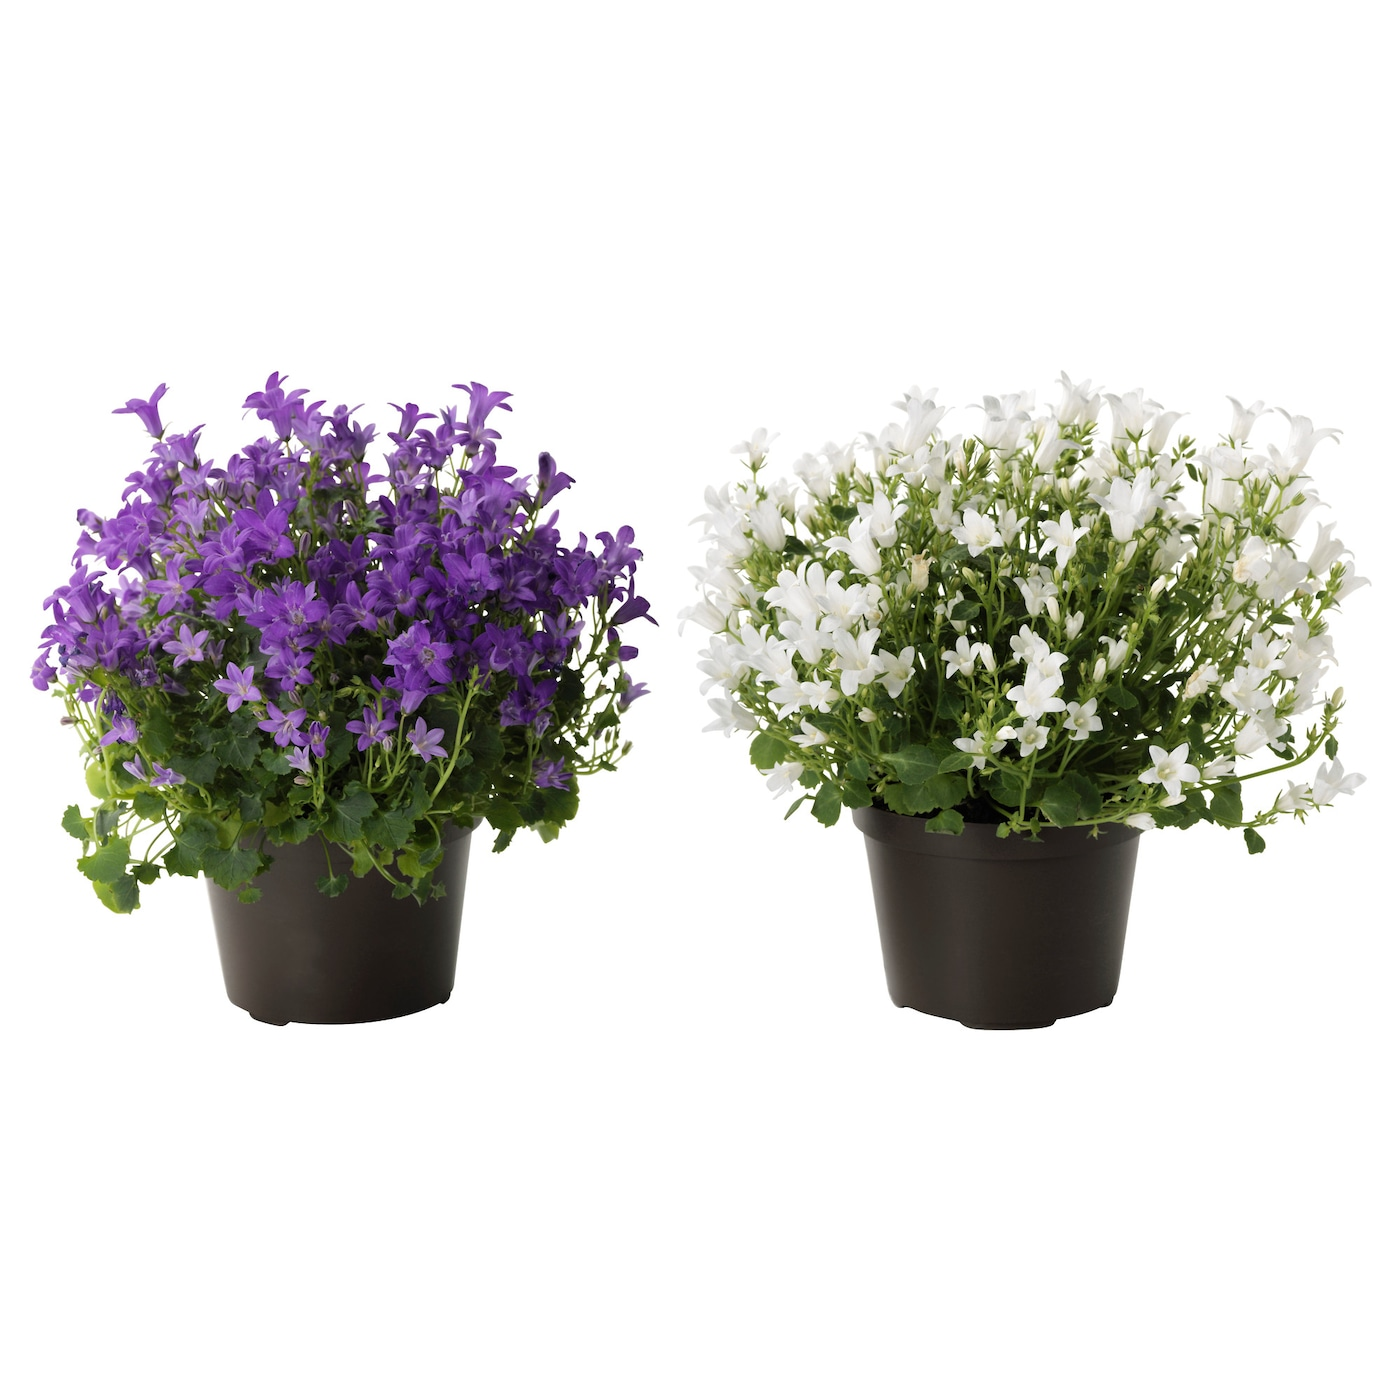 campanula portenschlagiana plante en pot campanule 10 5 cm ikea. Black Bedroom Furniture Sets. Home Design Ideas